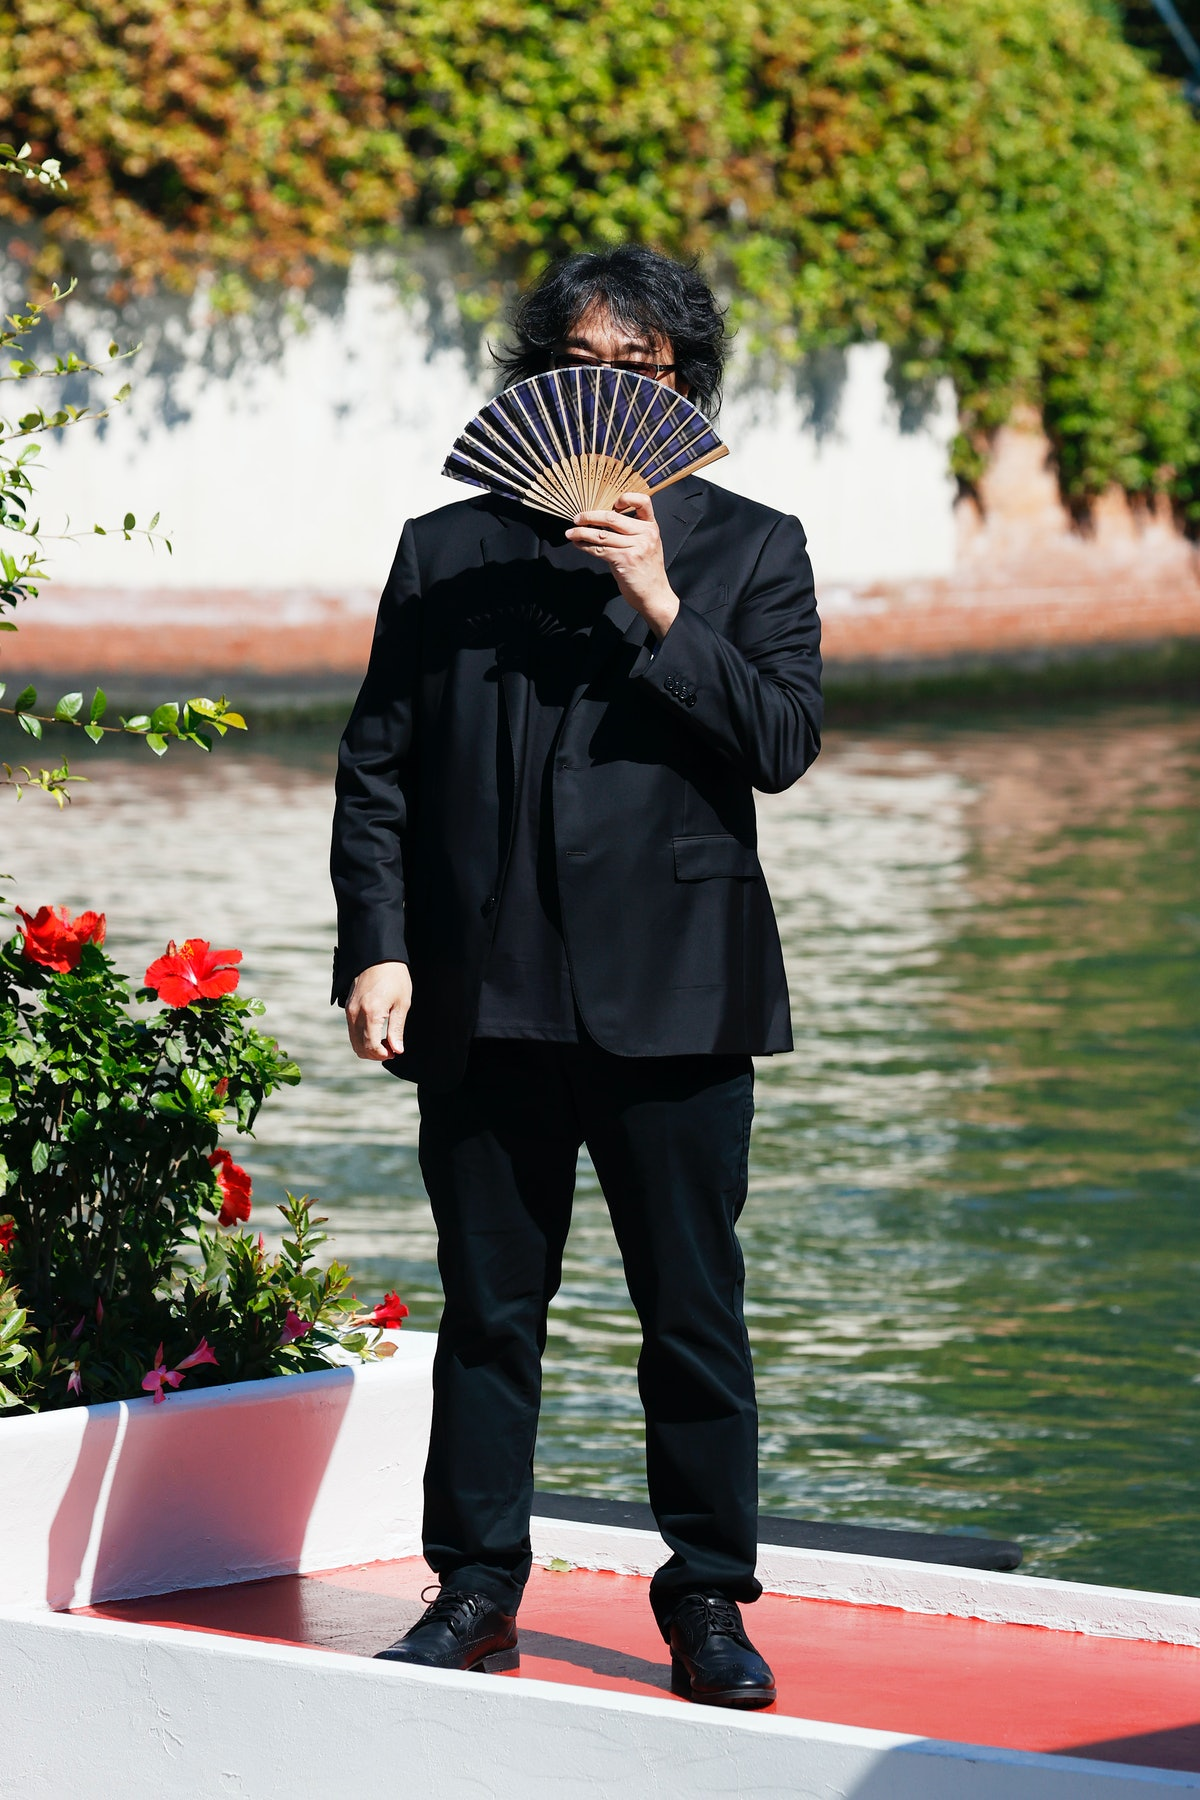 Bong Joon-ho holding a fan in front of his face